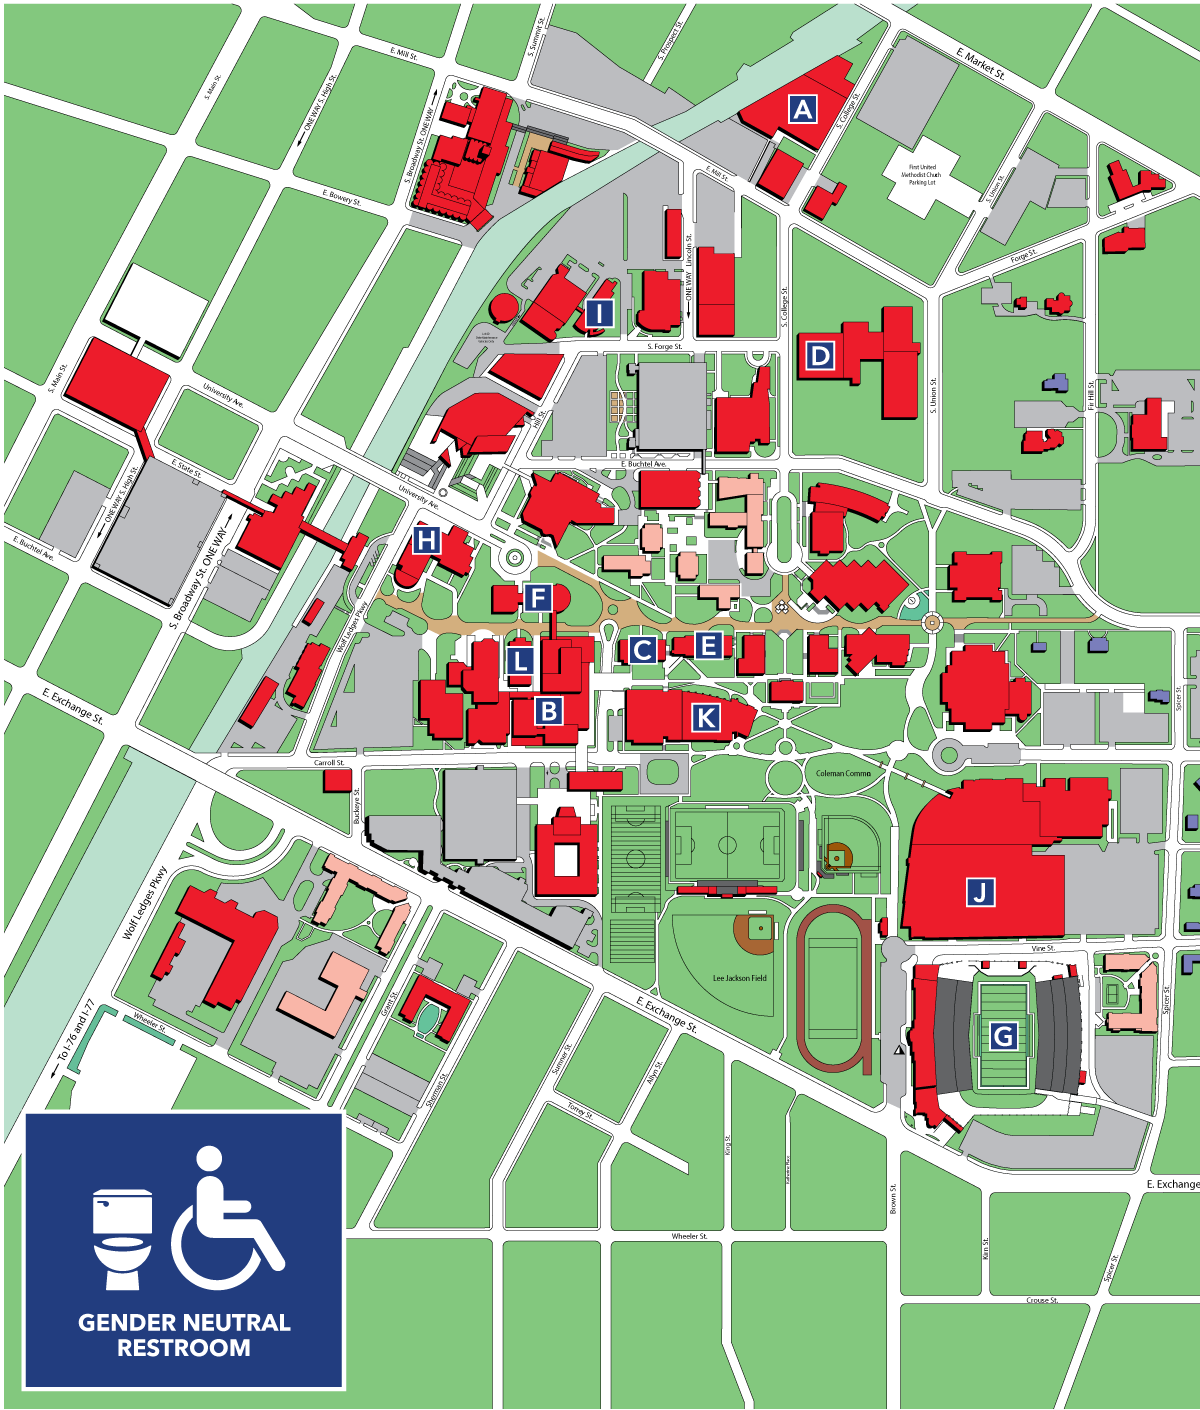 University Of Akron Campus Map Map of Gender Neutral Bathrooms : The University of Akron